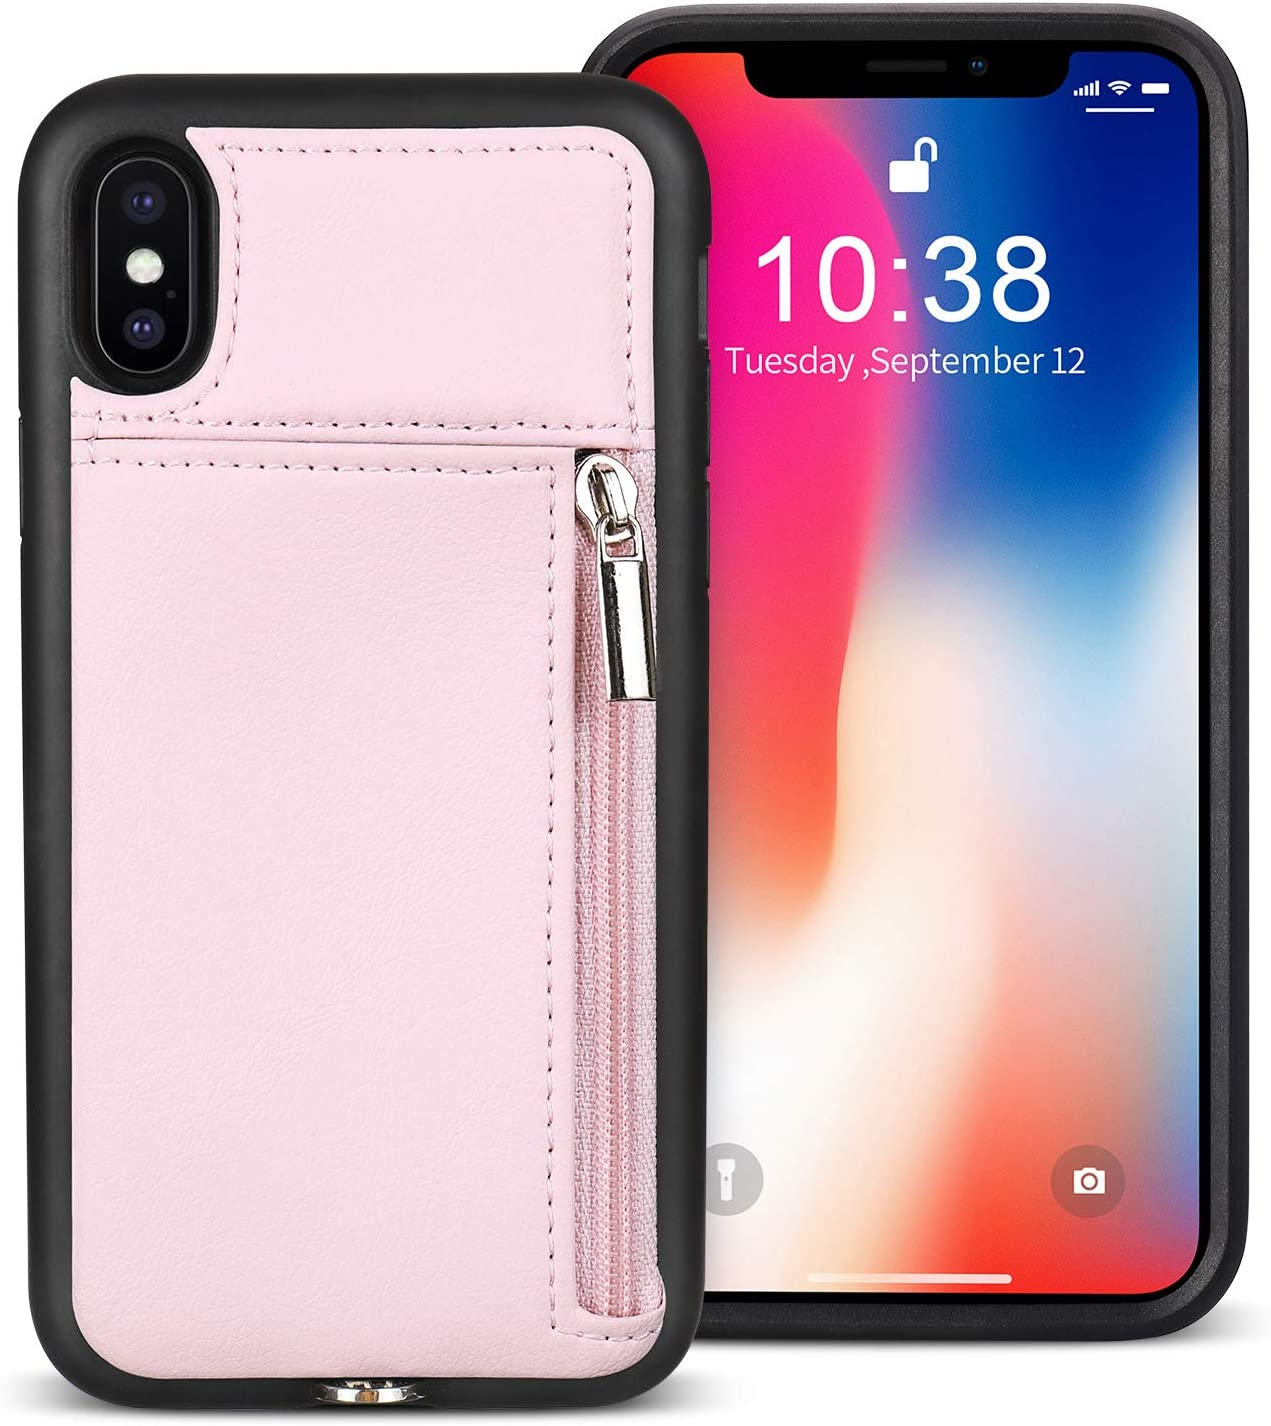 JISON21 iPhone X Wallet Case , Zipper Wallet Case with Credit Card Holder, iPhone XS leather Wallet Case for Women/Men, Adjustable Crossbody Chain Case for iPhone X/XS 5.8 Inch (Pink)